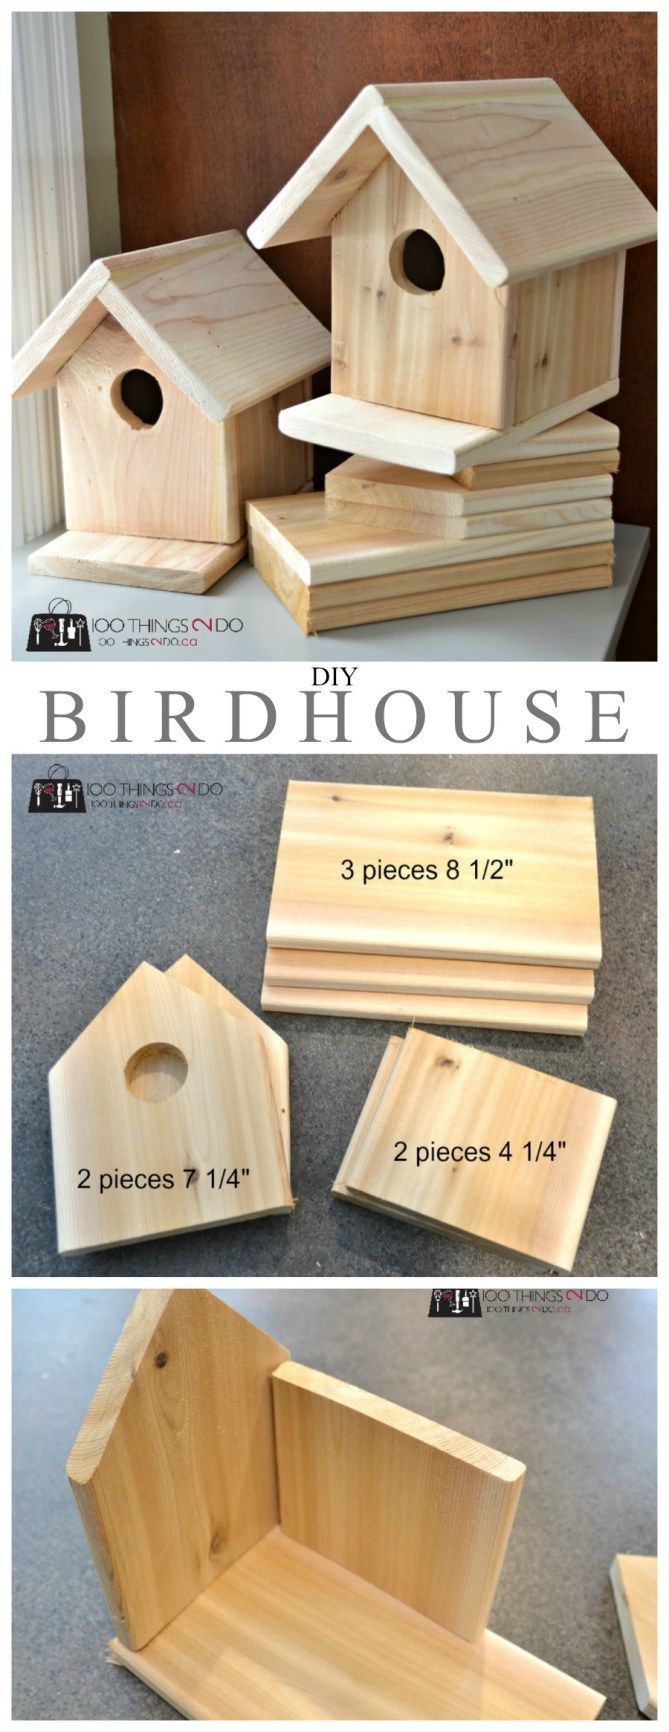 DIY birdhouse - only $3 to build and a great project for both kids and nature.